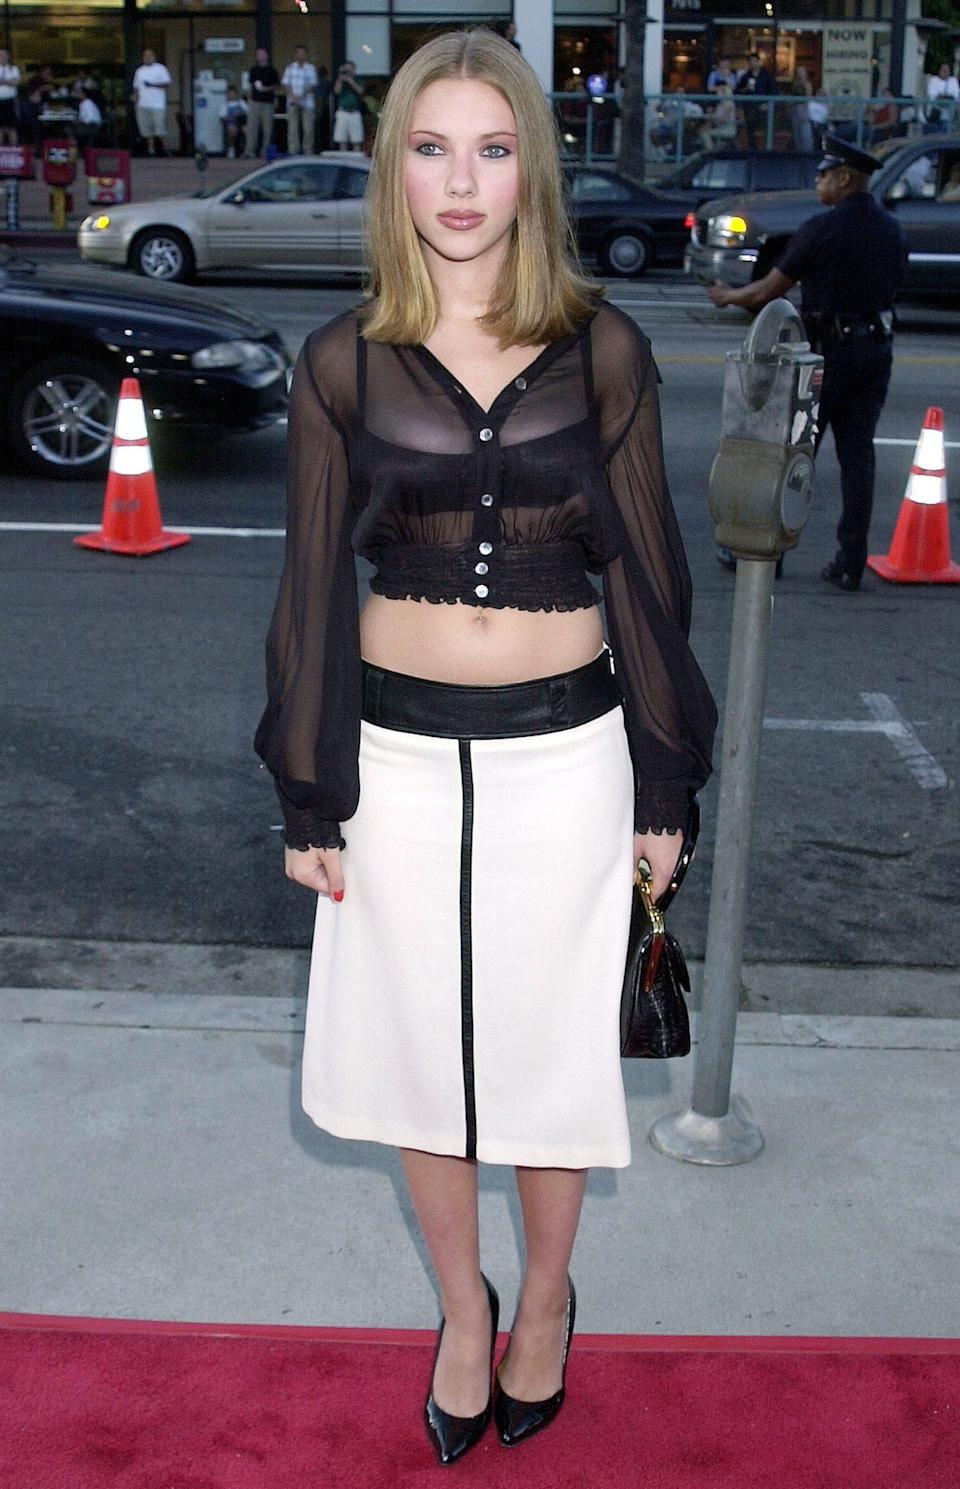 <p>The center-parted, shoulder-grazing hair! The umber-colored eye shadow that made her blue eyes pop! The crop top/pointy-toe shoe combo! The actress brought all the early-aughts trends to <em>The Others'</em> L.A. premiere in 2001.</p>